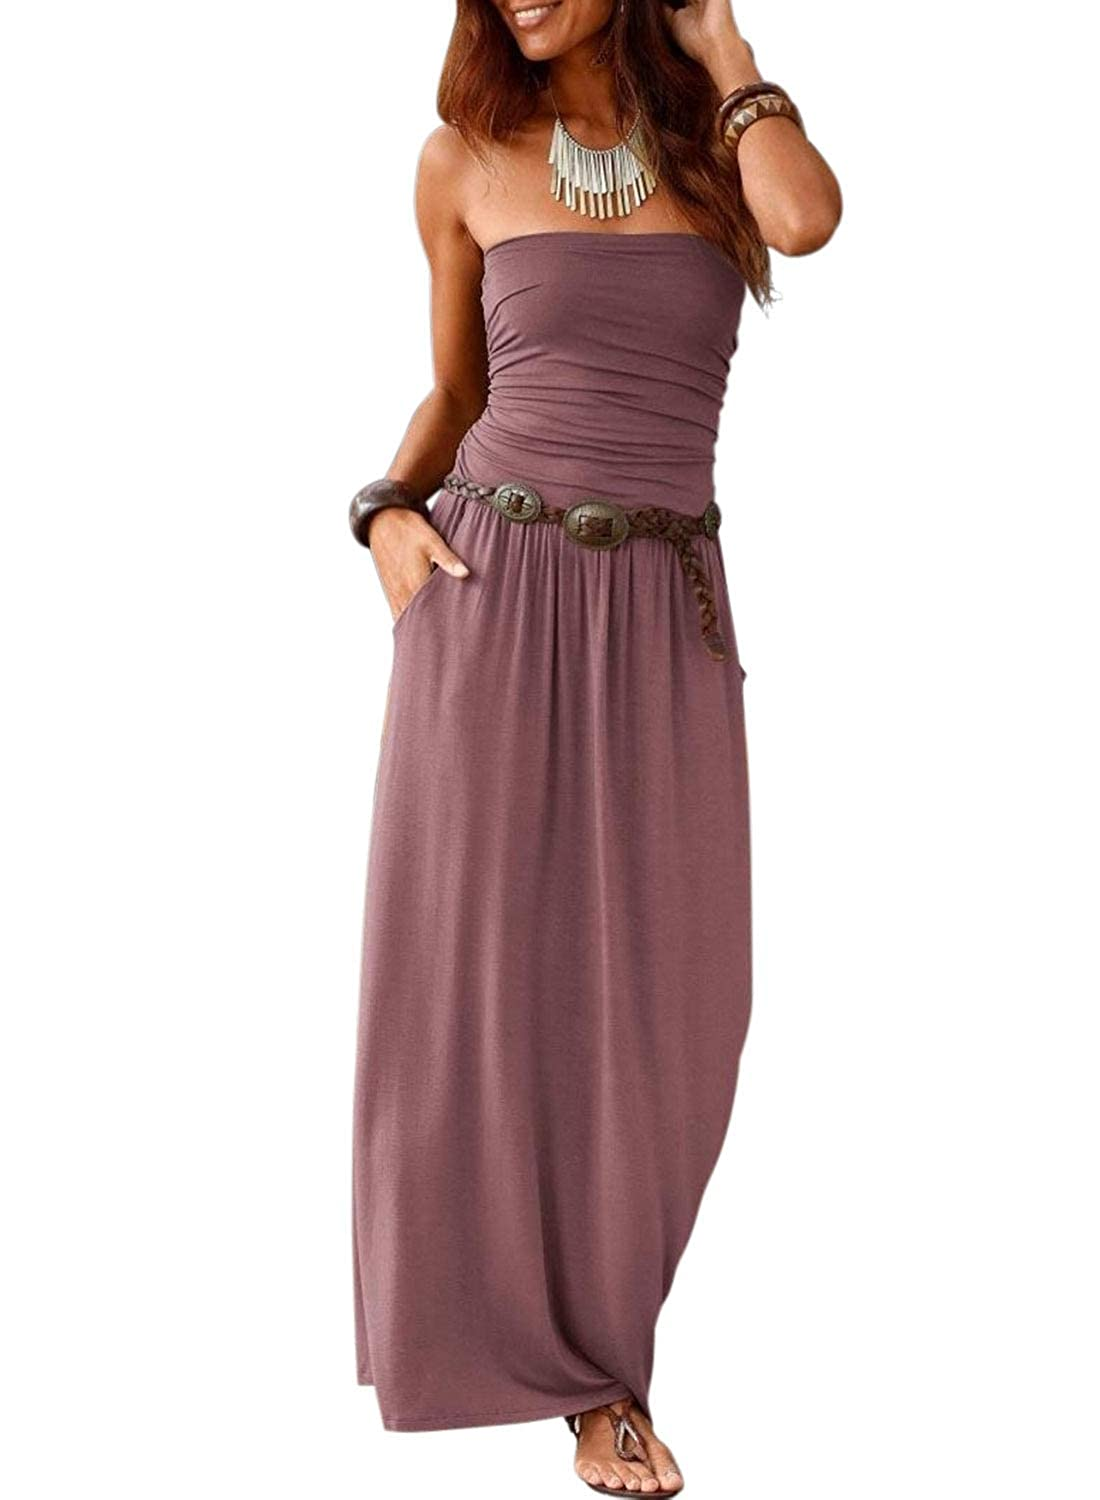 881873b564 AlvaQ Women Summer Casual Strapless Maxi Dress Off Shoulder Tube Long  Dresses with Pockets at Amazon Women's Clothing store: